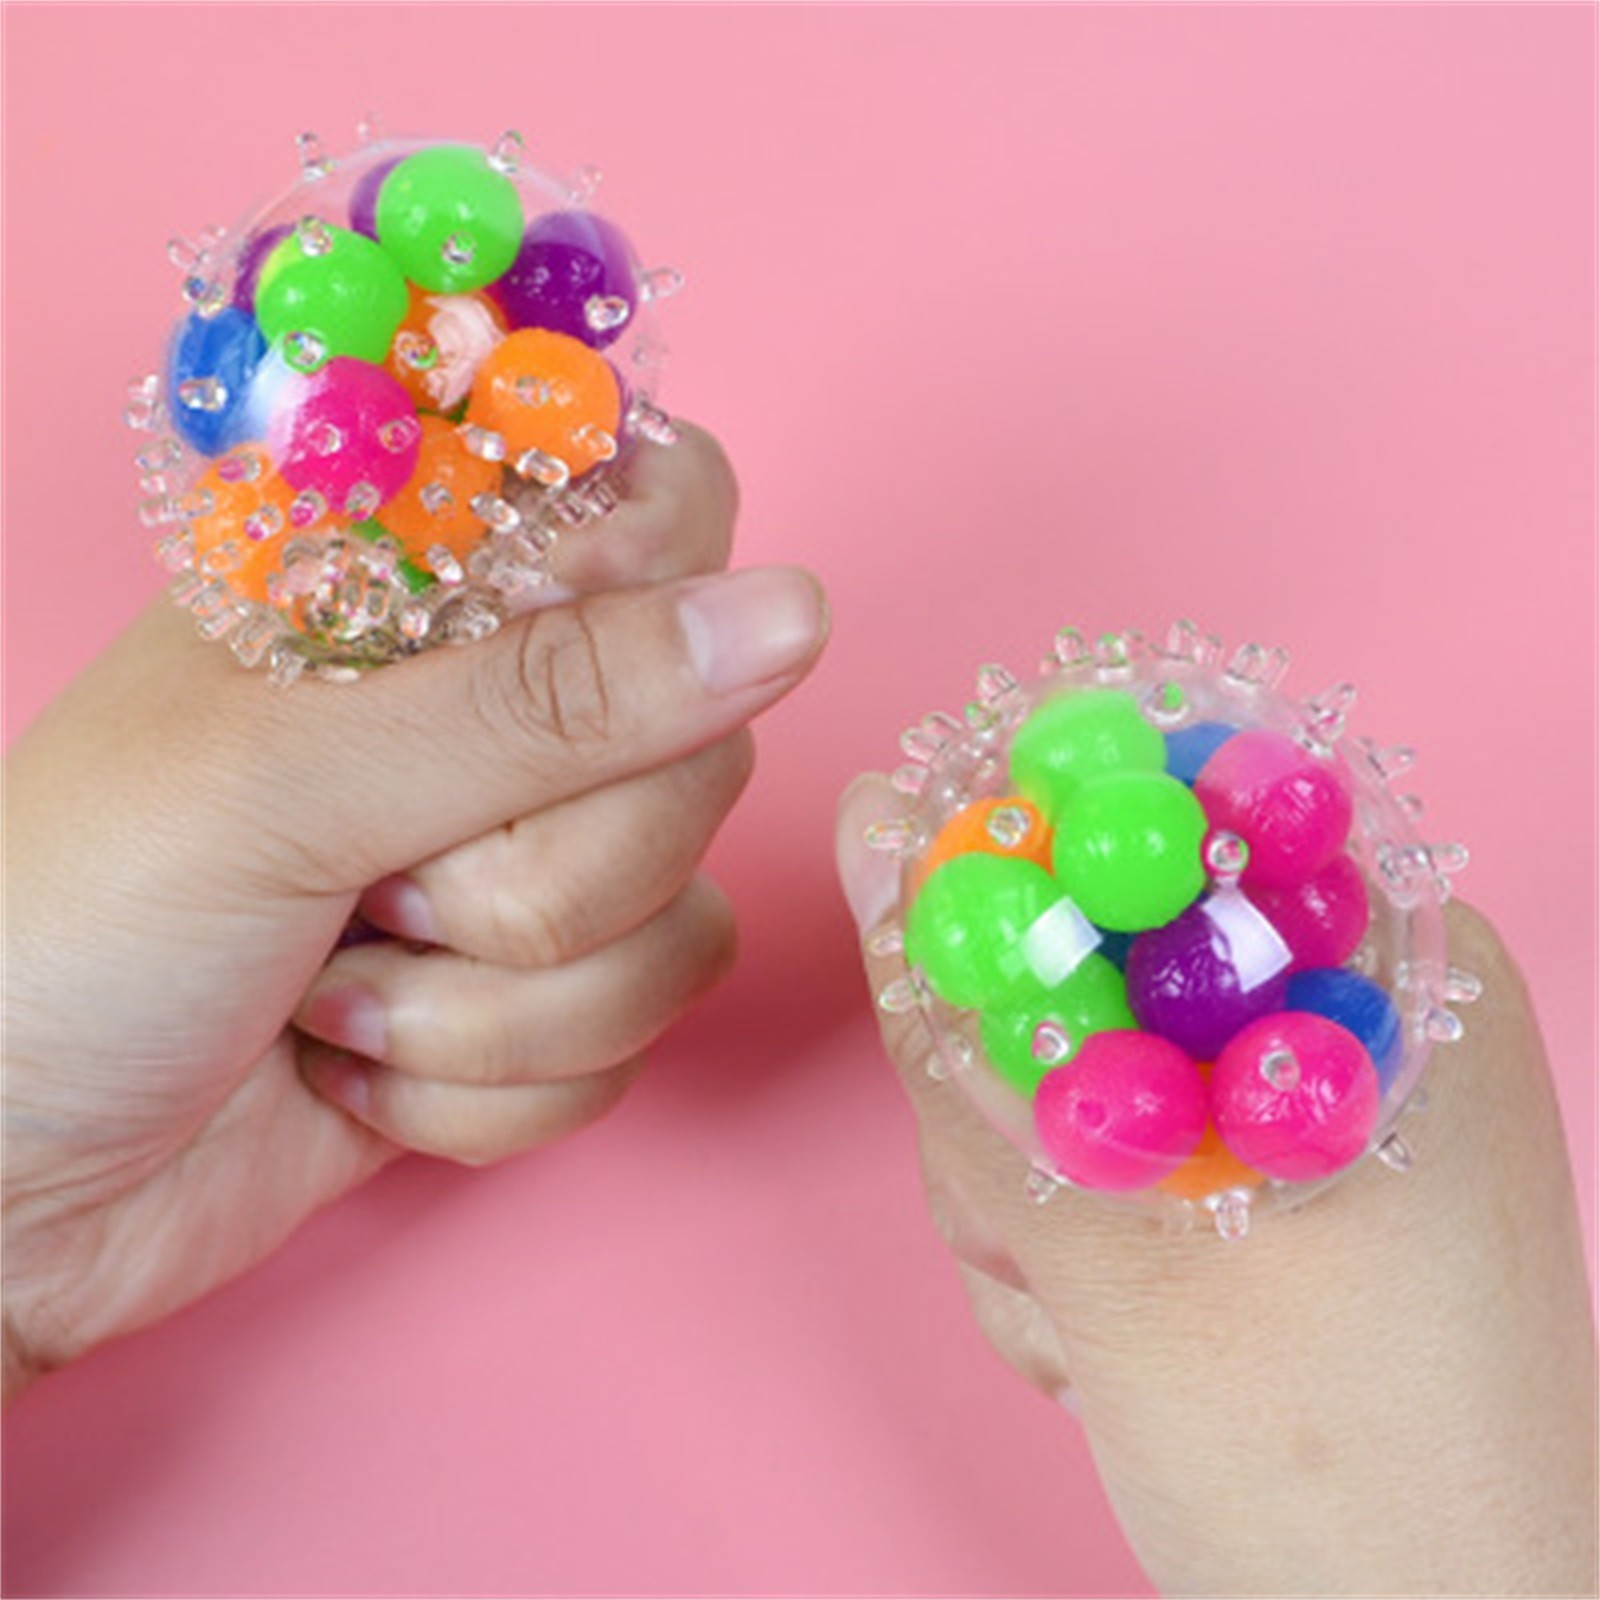 Toy Pressure-Toy Rainbow-Ball Squeezable Adults Kids Spongy That Beautiful And Like-A- img2